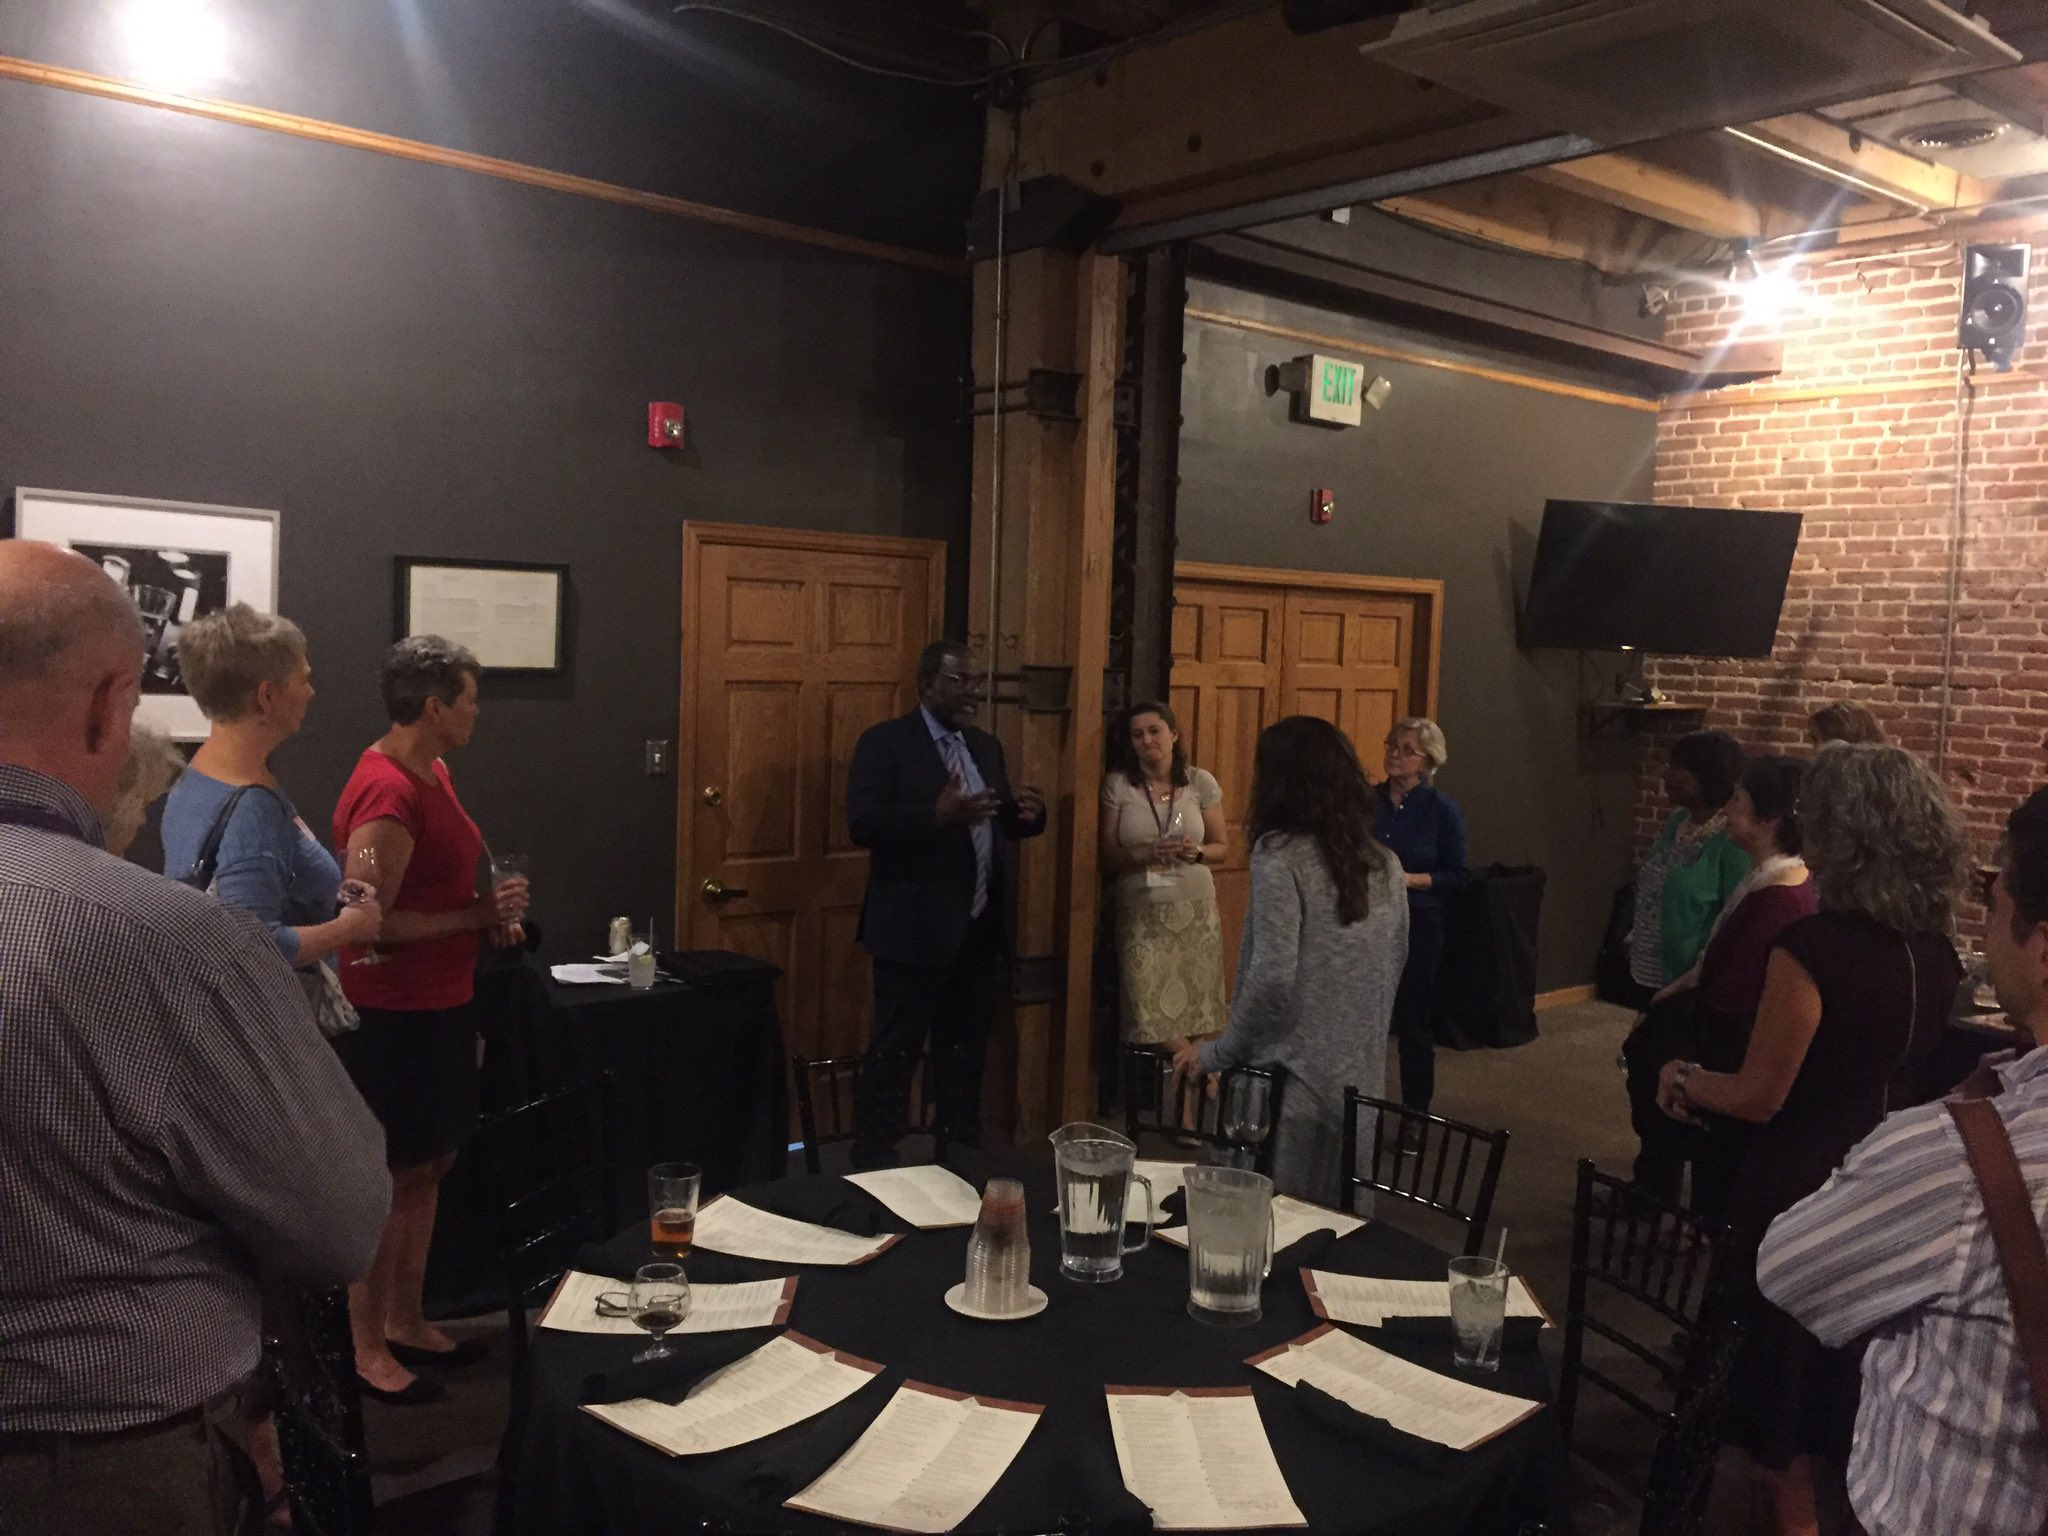 Ralph Smith is talking about both hardback and digital book distribution with folks at dinner hosted by @FirstBook #GLRWeek #Partnerships https://t.co/fS2bzmzxLQ